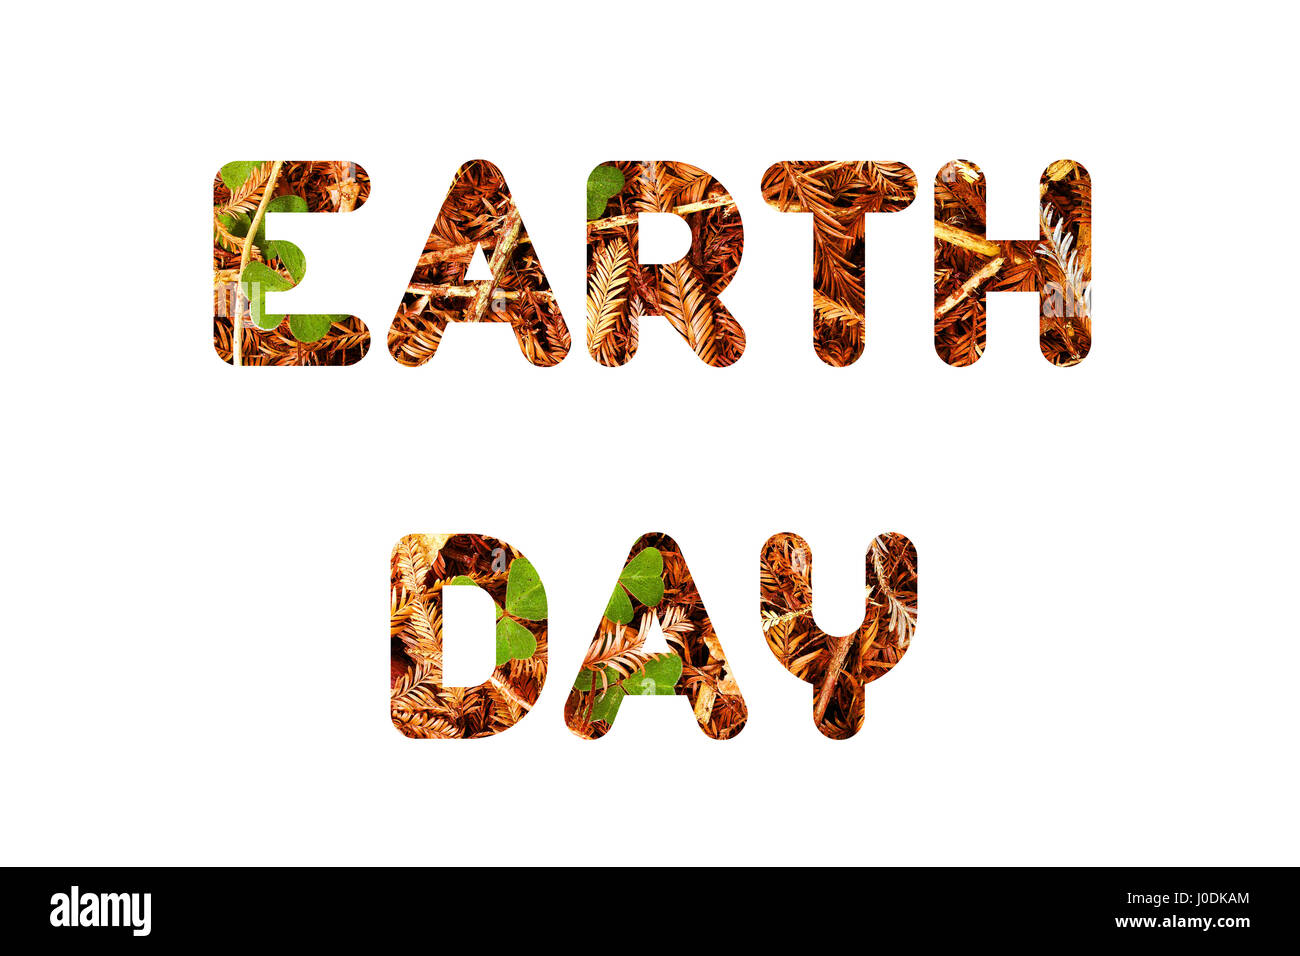 Free Earth Day Gifs - Clipart